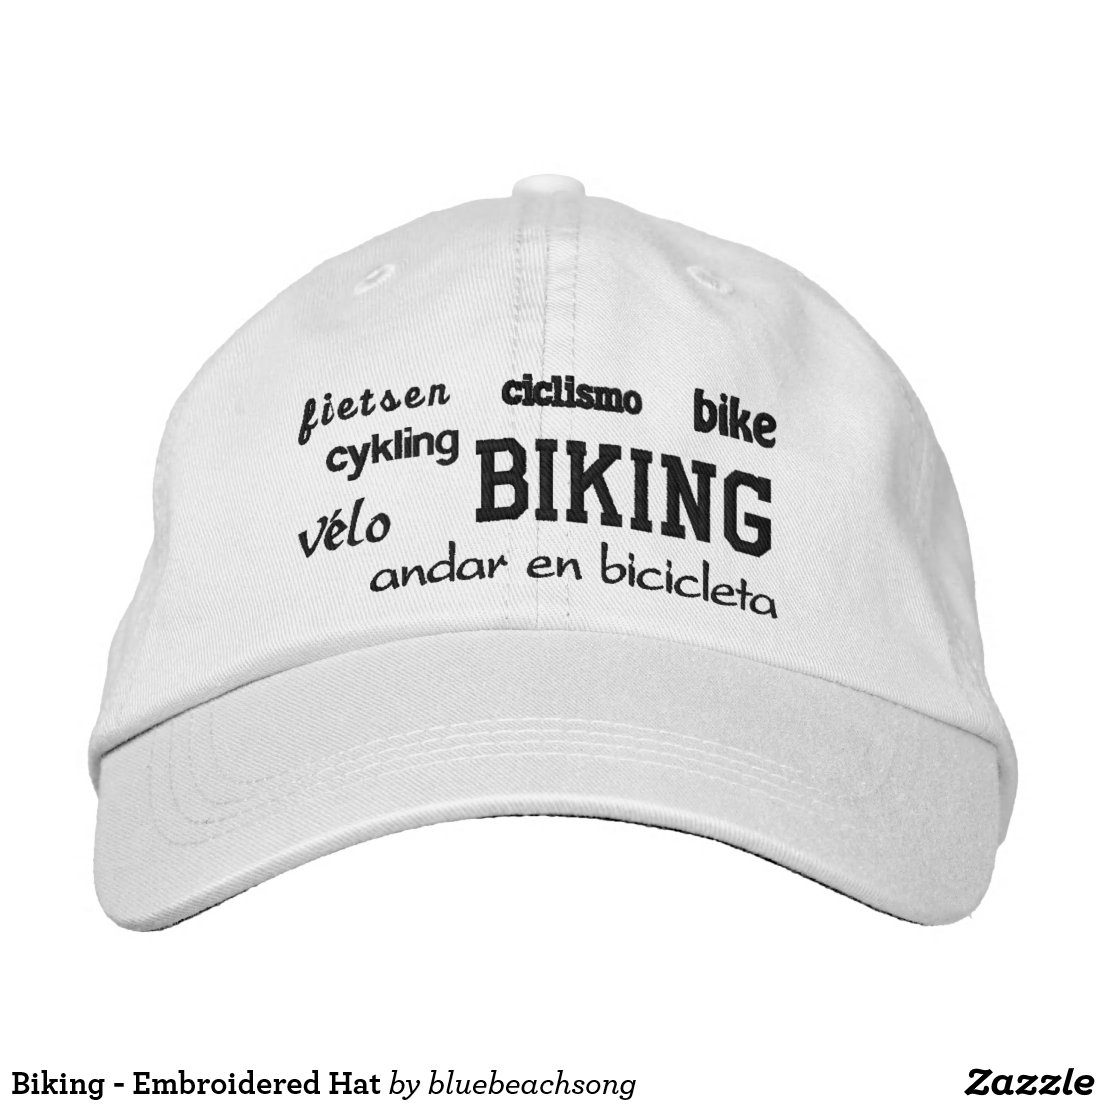 Biking - Embroidered Hat